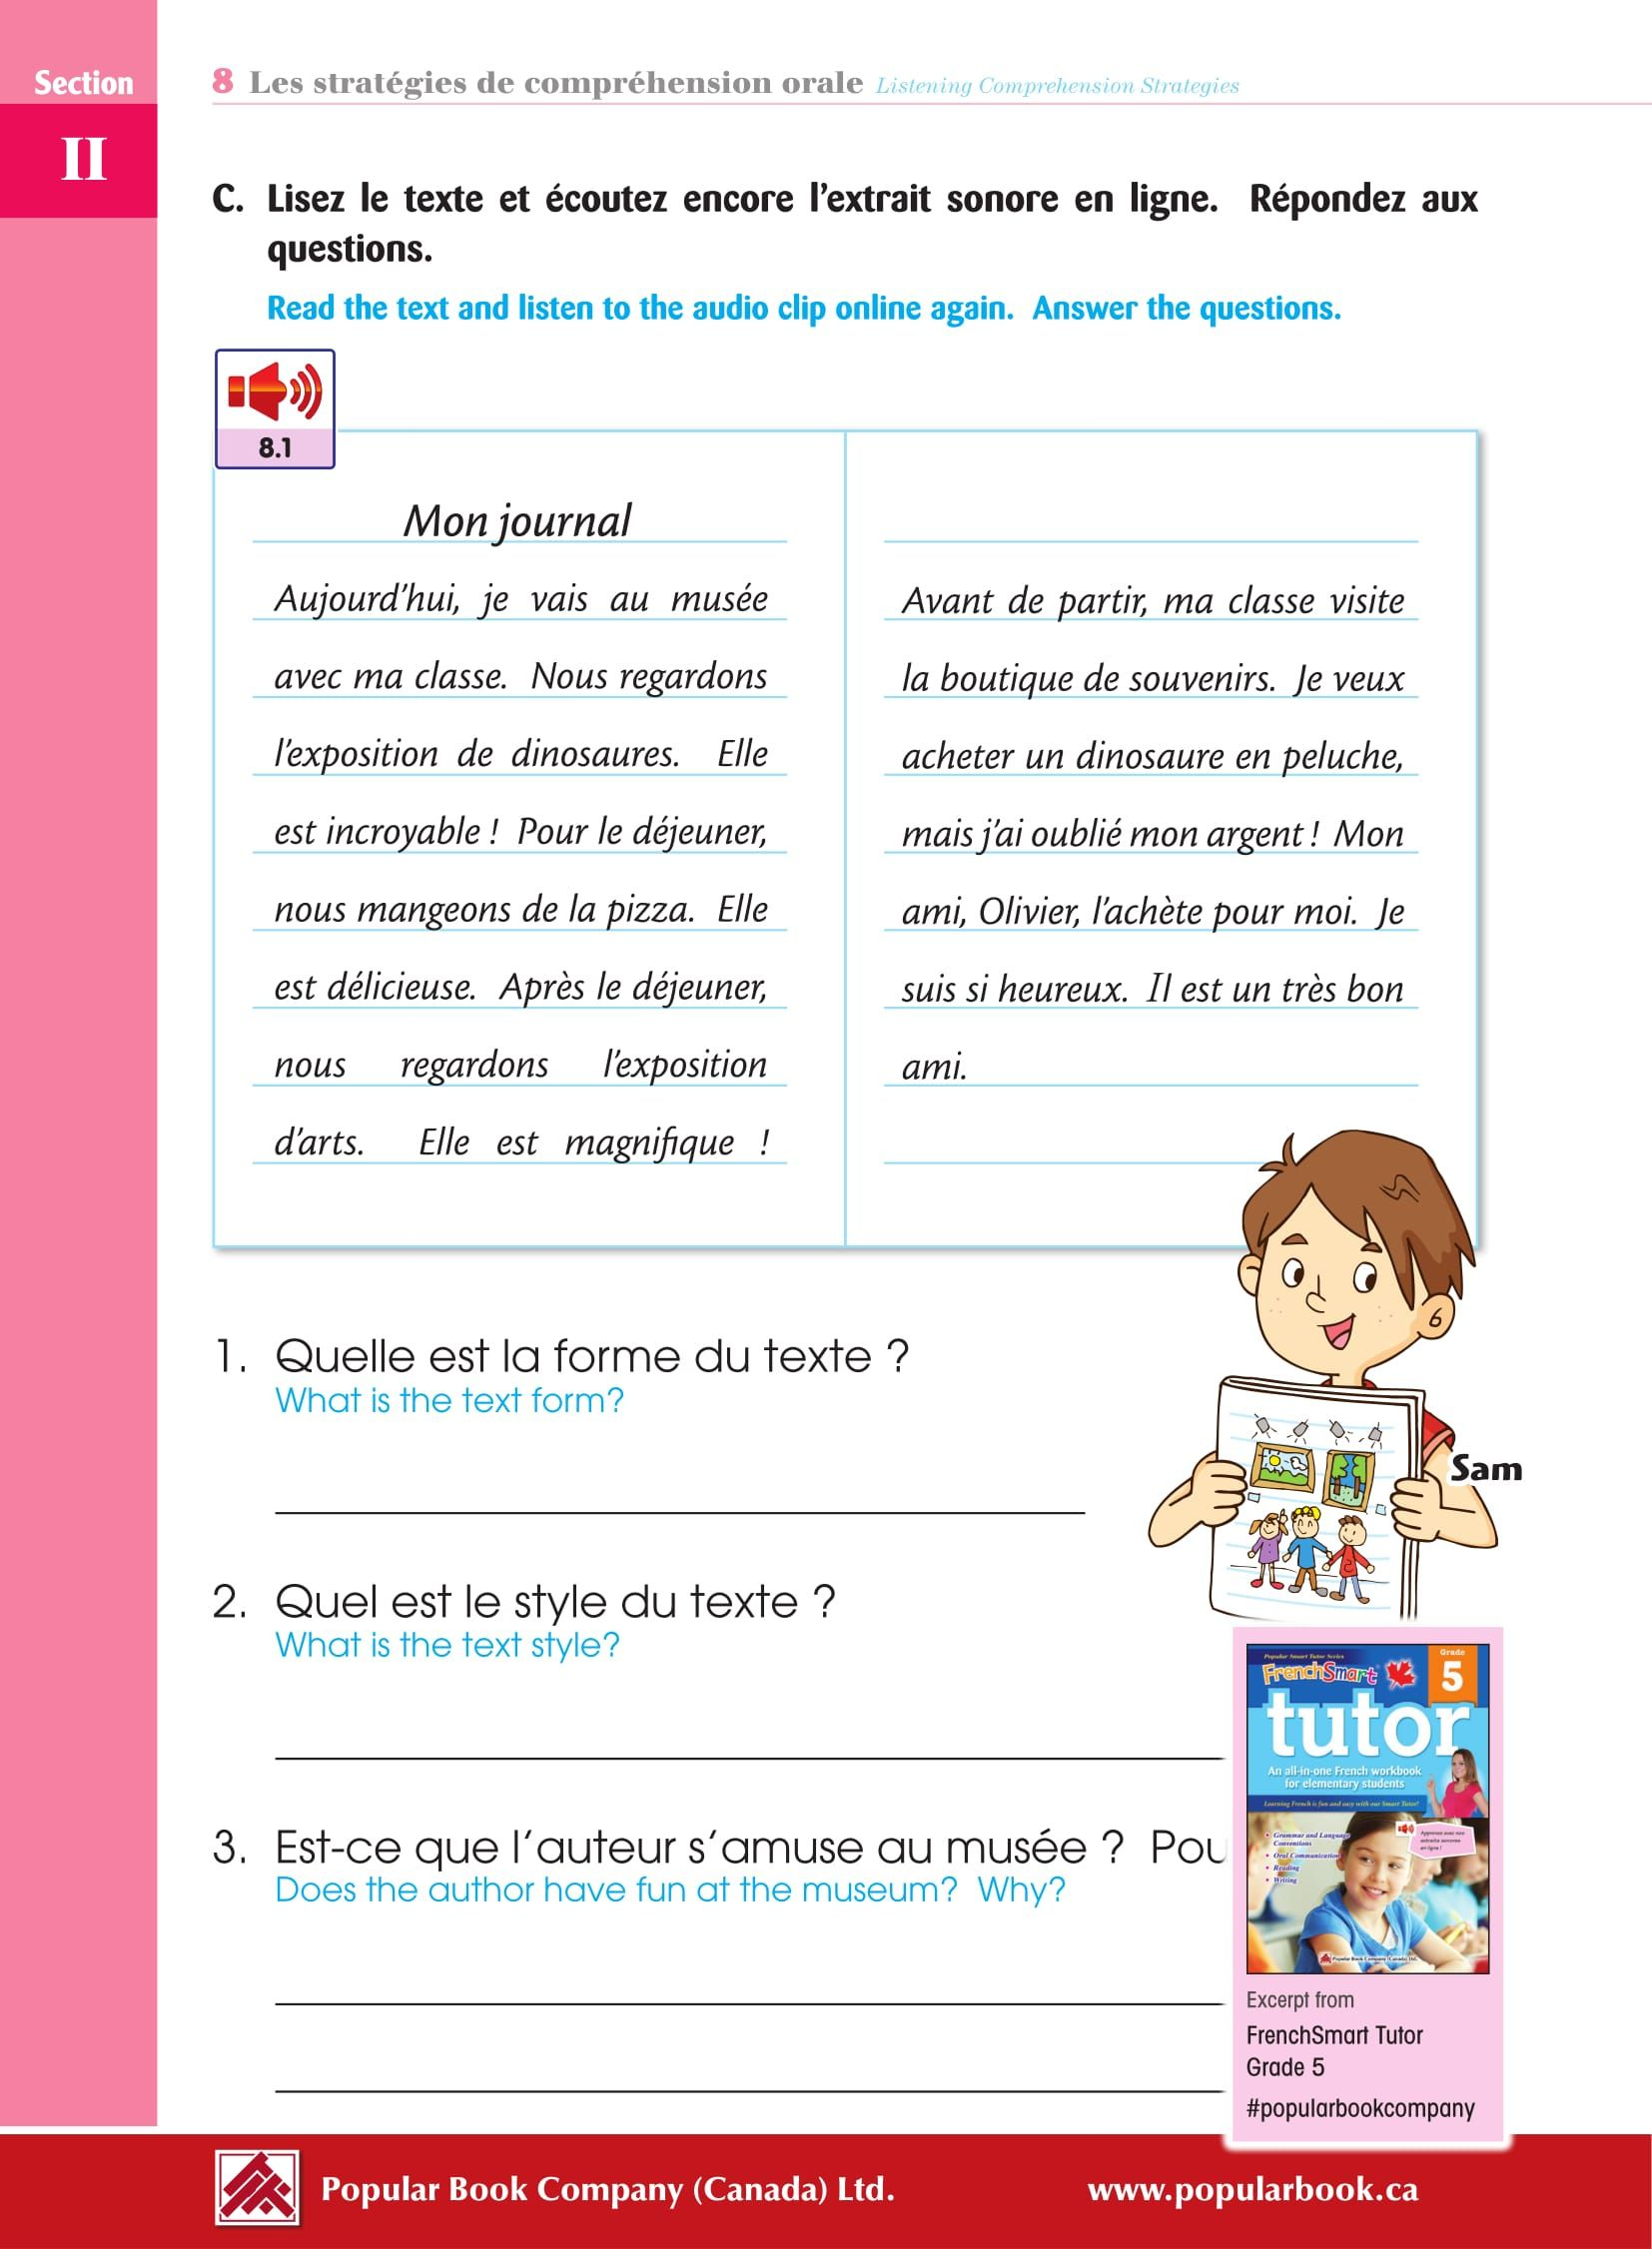 medium resolution of Download the free sample pages from FrenchSmart Tutor Grade 5 workbook.  #PopularBookCompany #FrenchSmartT…   Free worksheets for kids